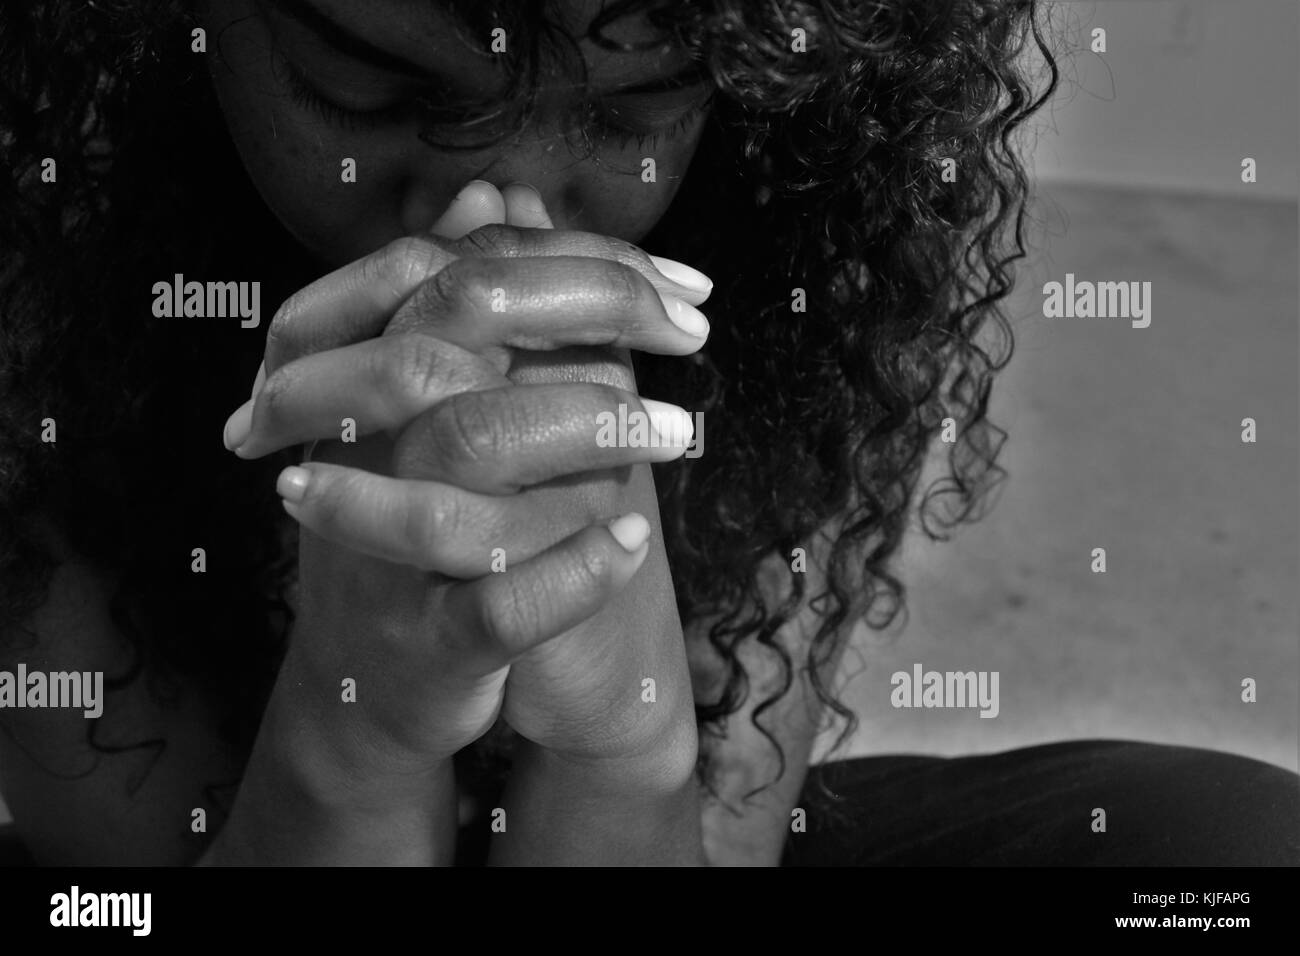 woman praying black and white stock photos images alamy